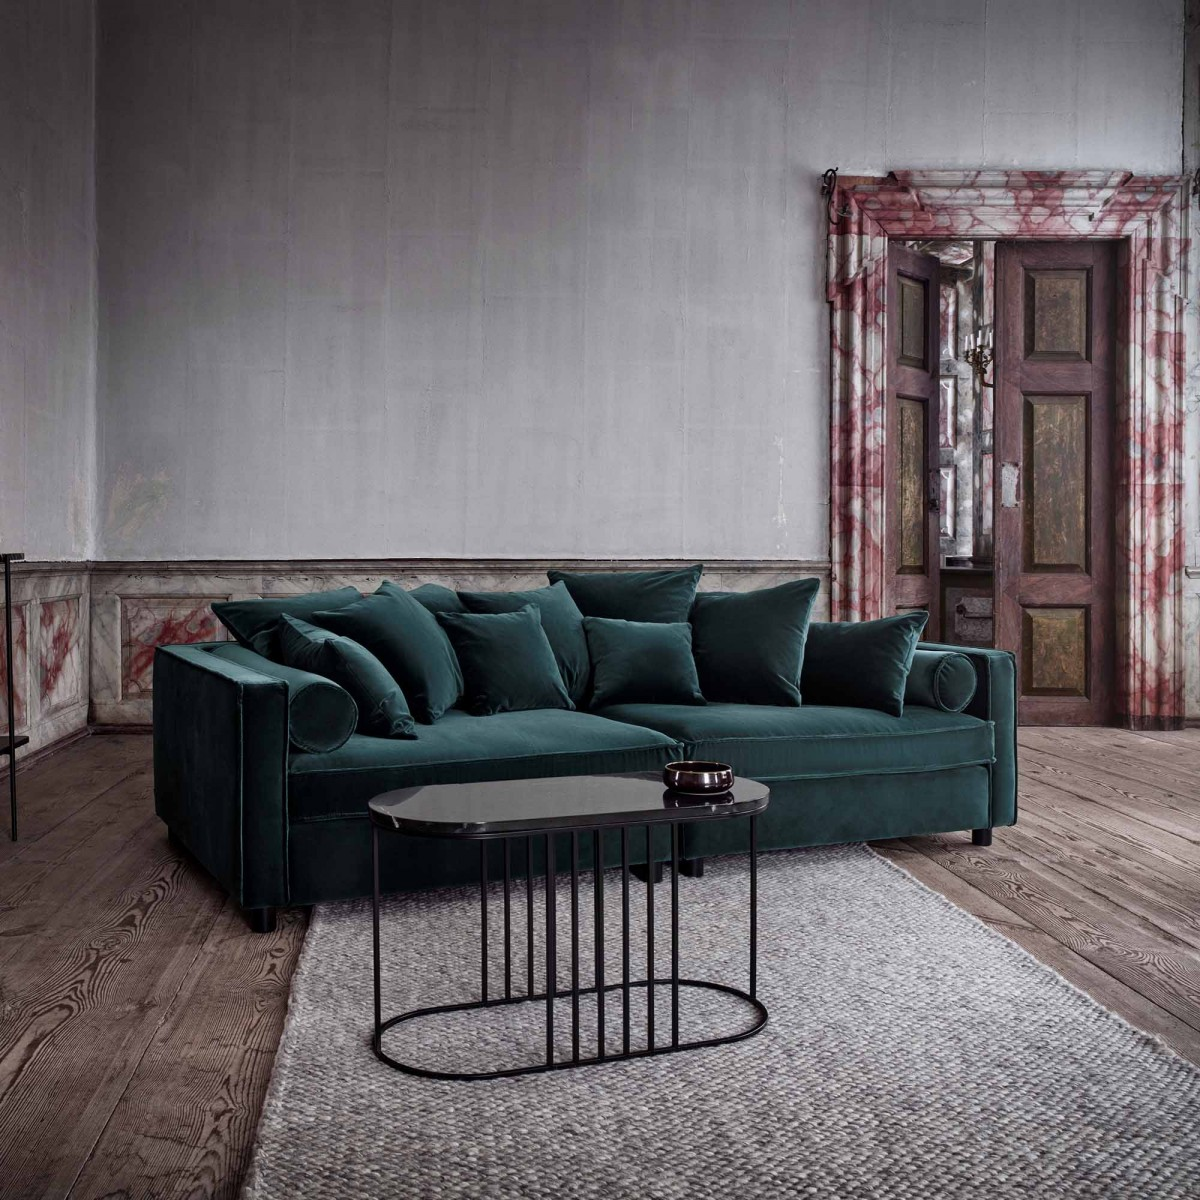 Mr Big Sofa 2 Units Bolia